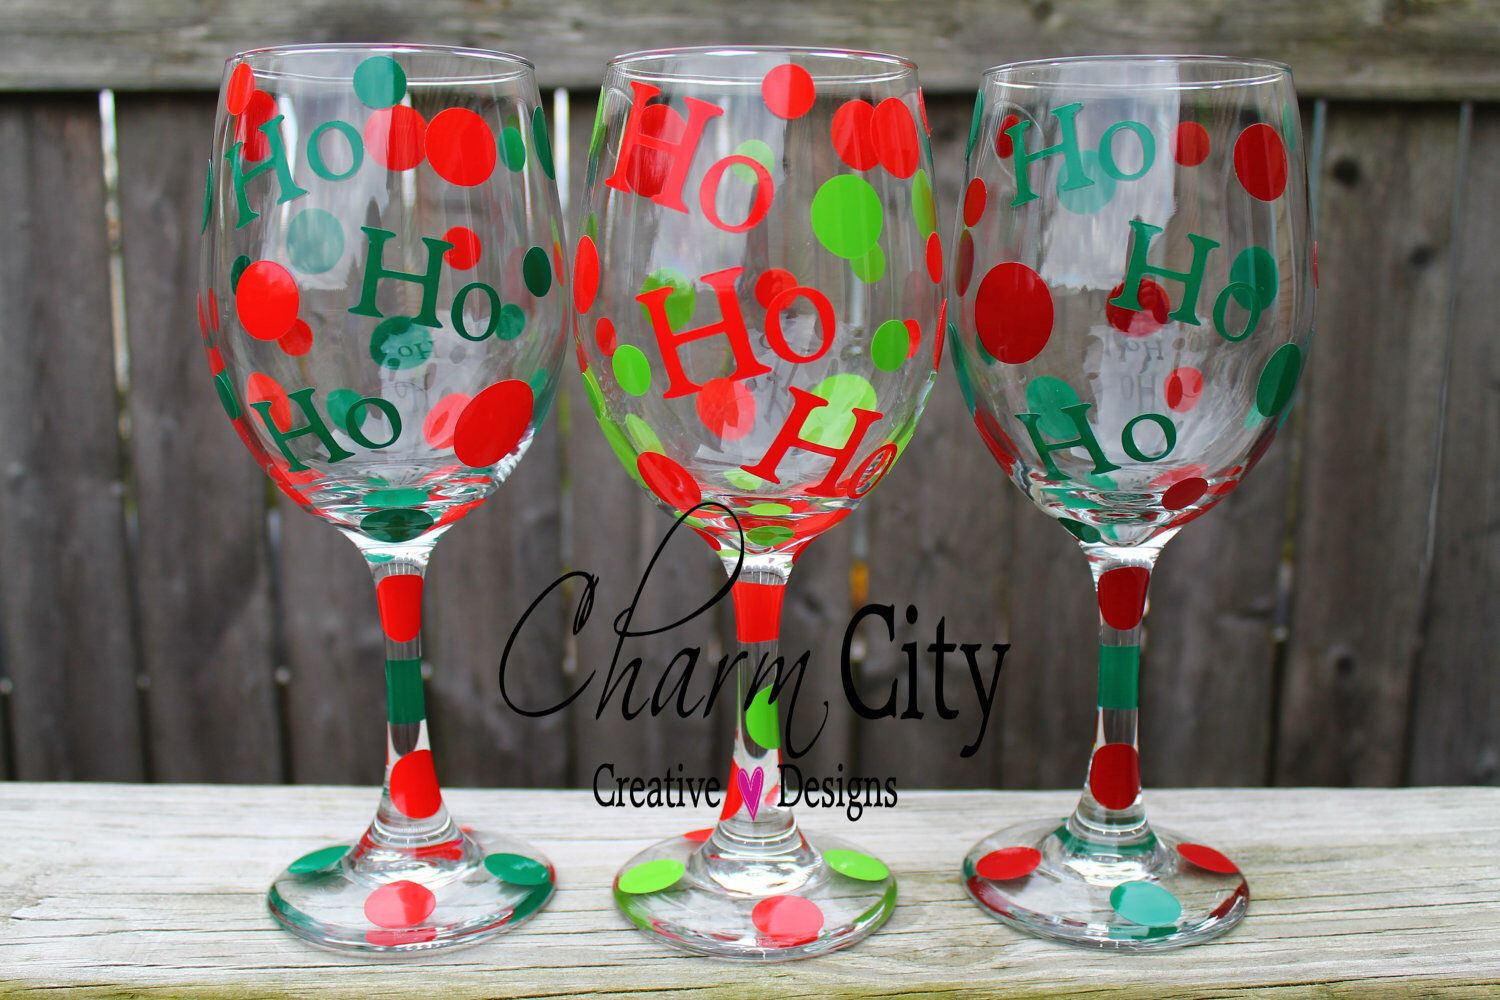 Holiday Wine Glass 20 Oz Christmas Holidays Gifts By Ahindle78 On Etsy Https Www Etsy Com Listing Wine Glass Crafts Painted Wine Glasses Holiday Holiday Wine